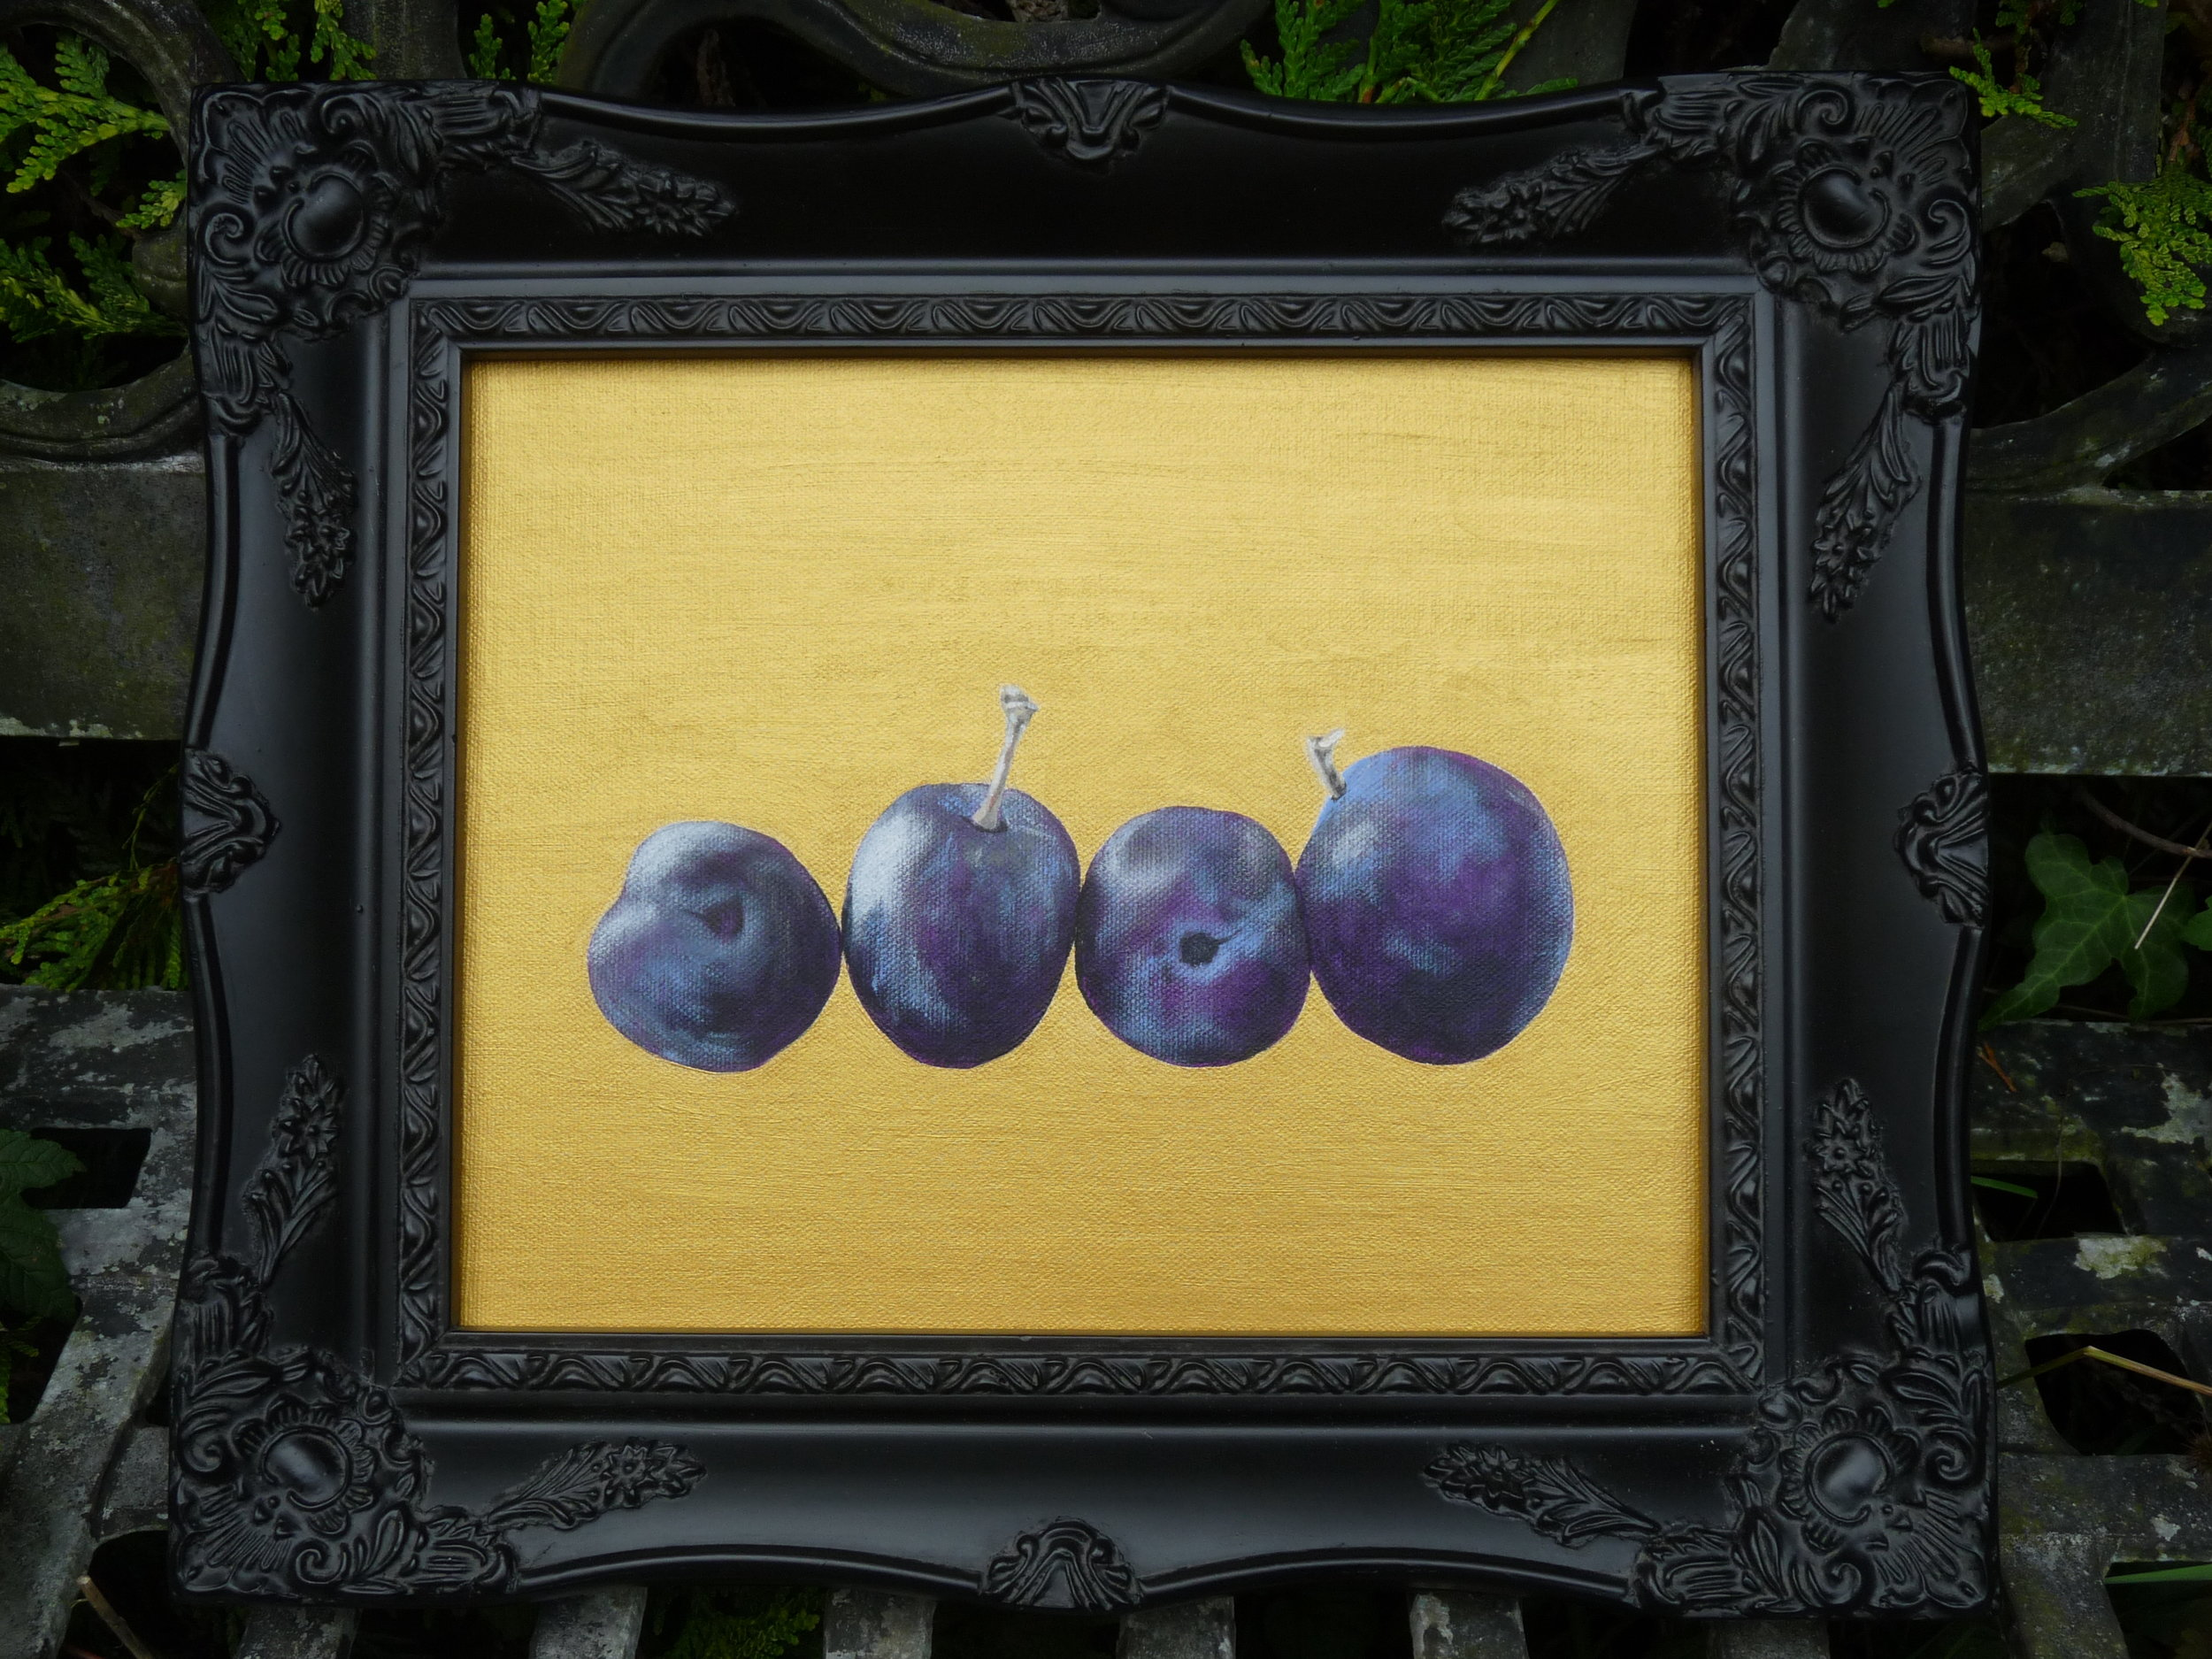 Plums on gold